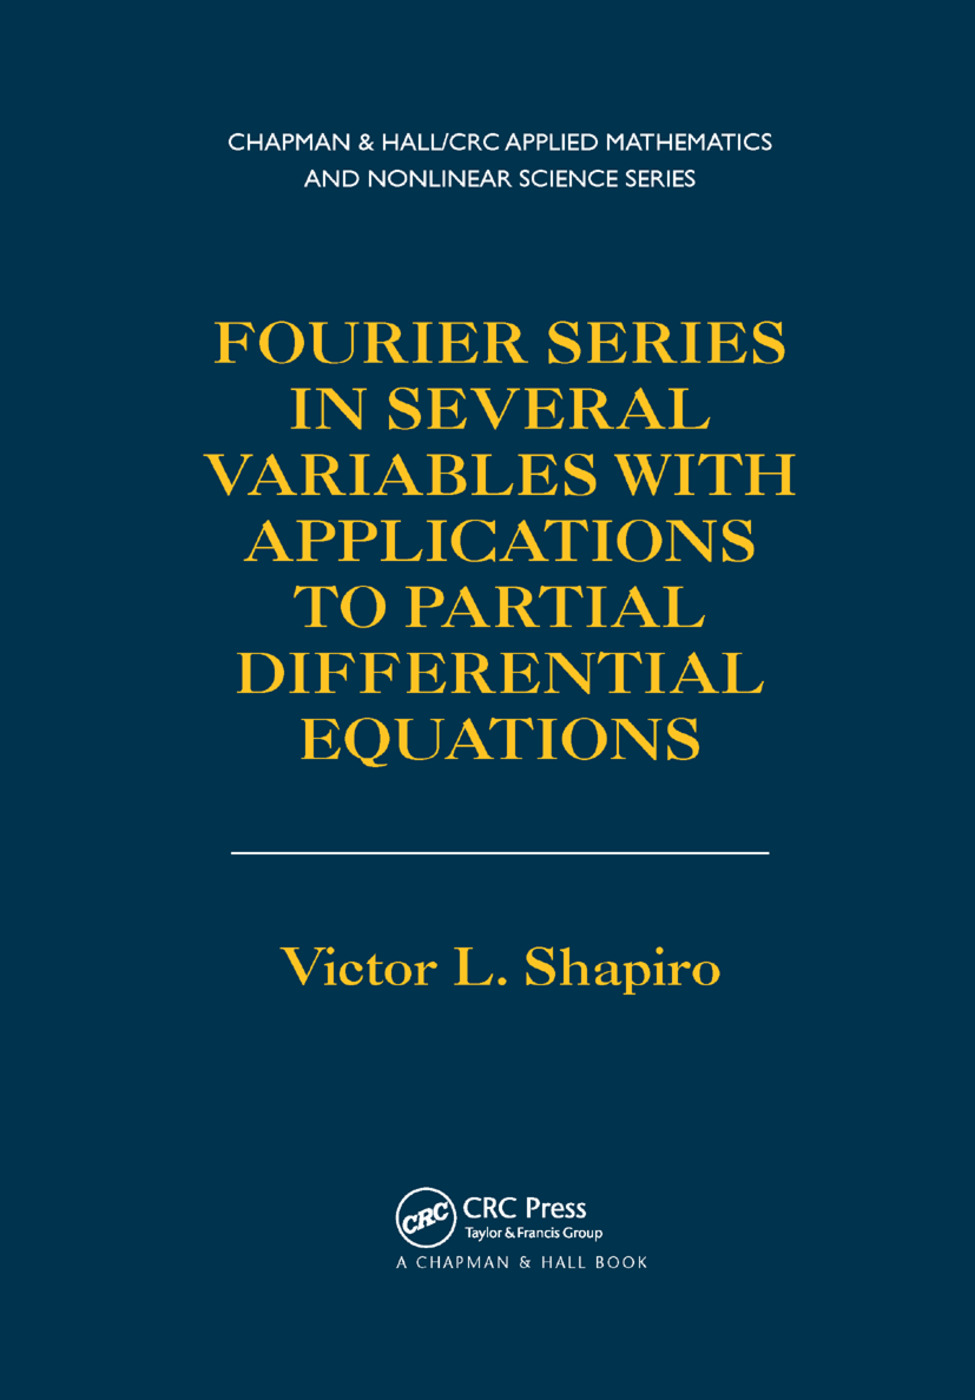 Fourier Series in Several Variables with Applications to Partial Differential Equations